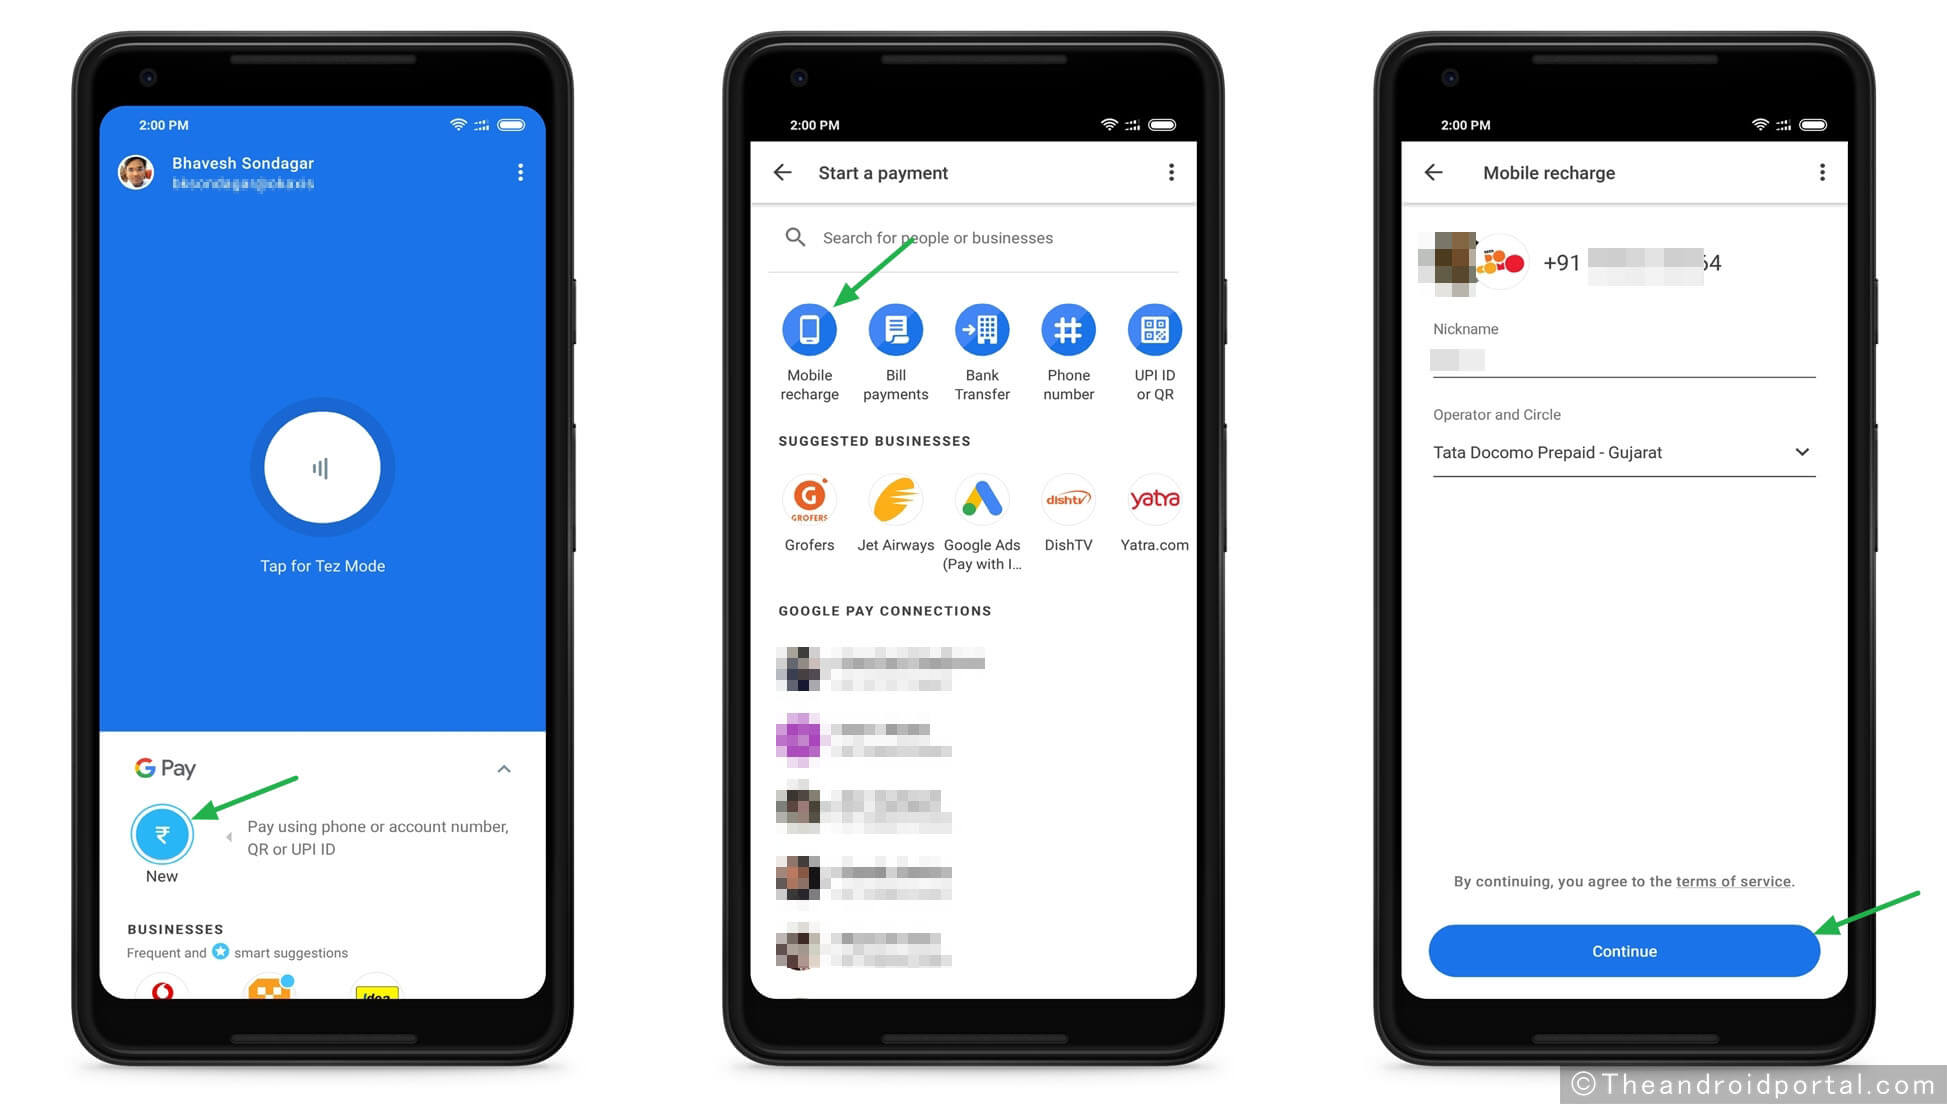 Use Google Pay to Recharge Mobile